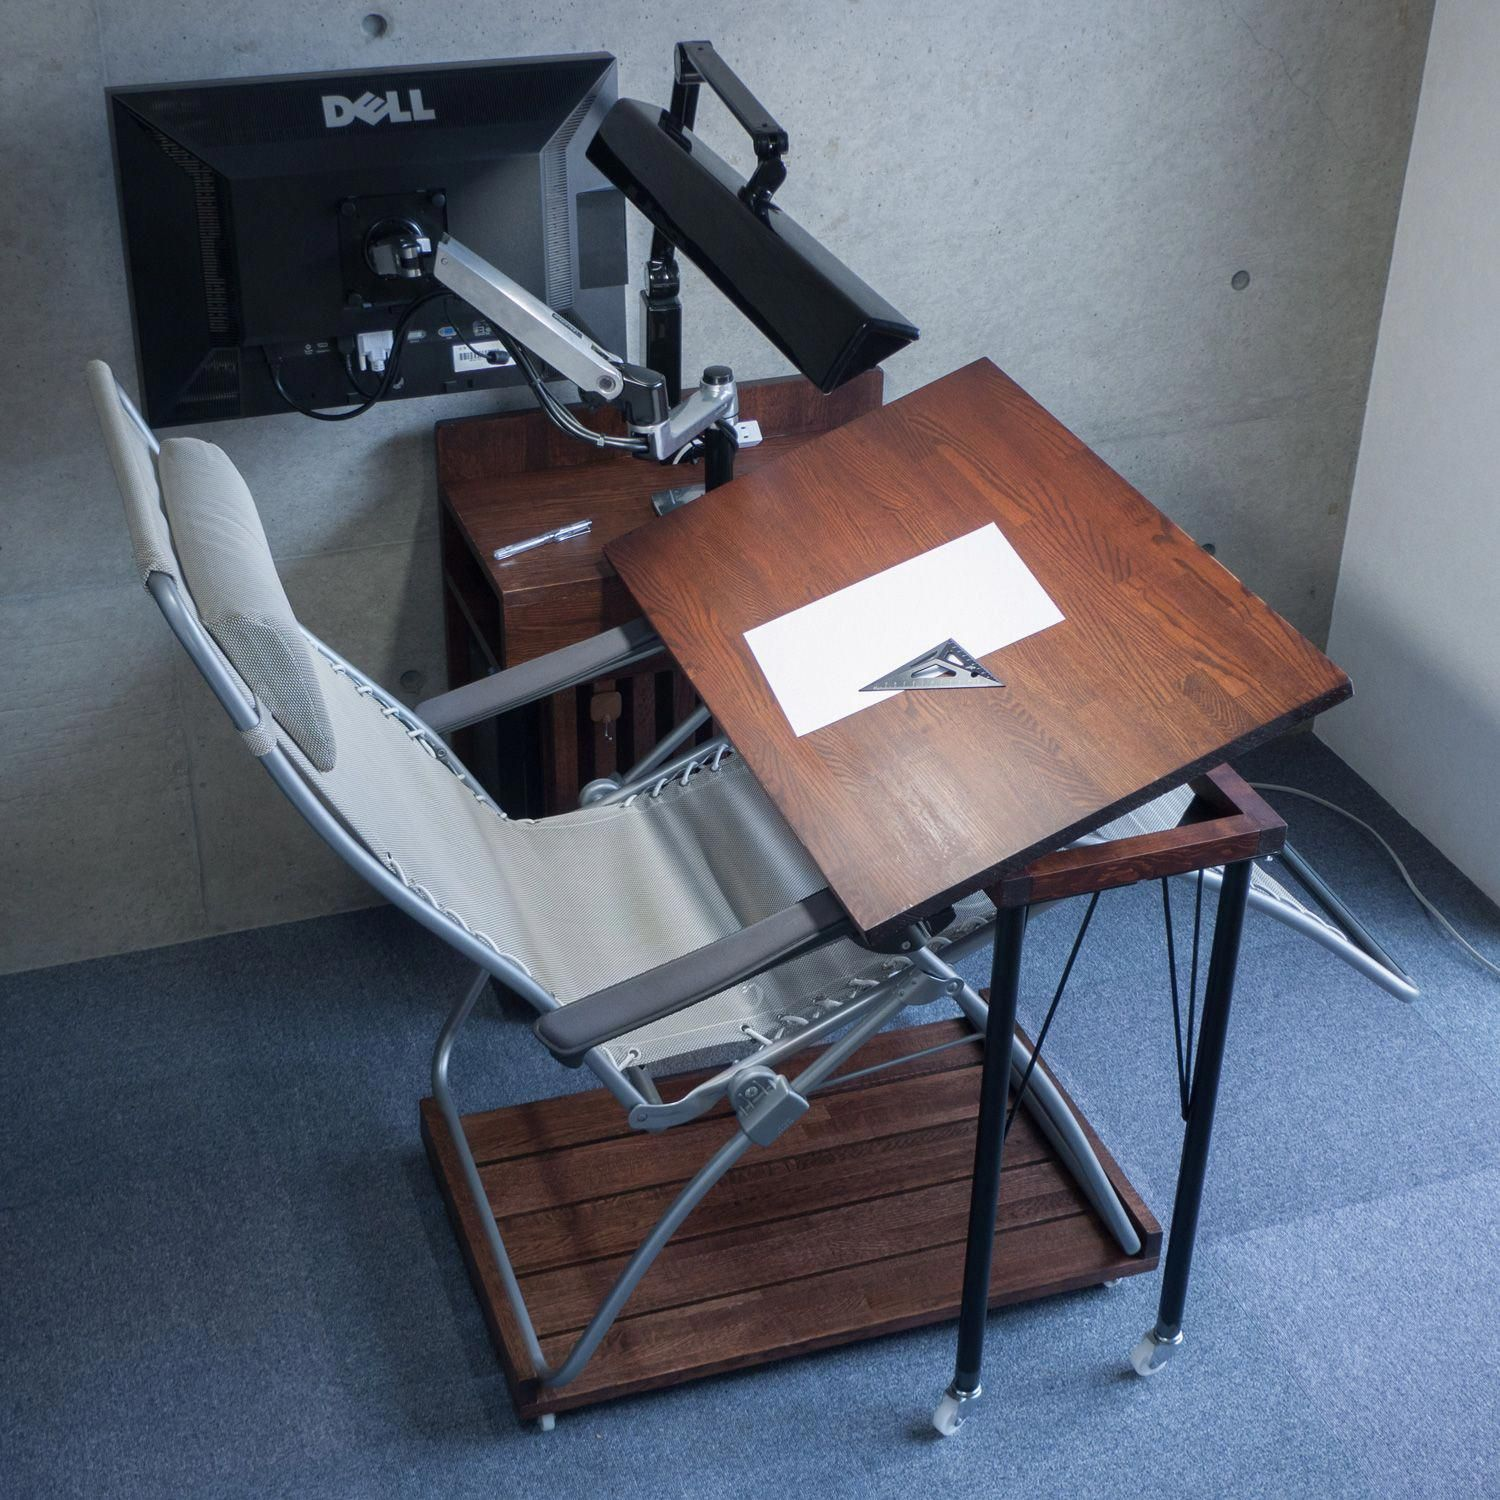 Pc Desk That Can Desk Work On Recliner Chairs Other Work Reclinerchair Work Space Chair Pc Desk Toddler Recliner Chair